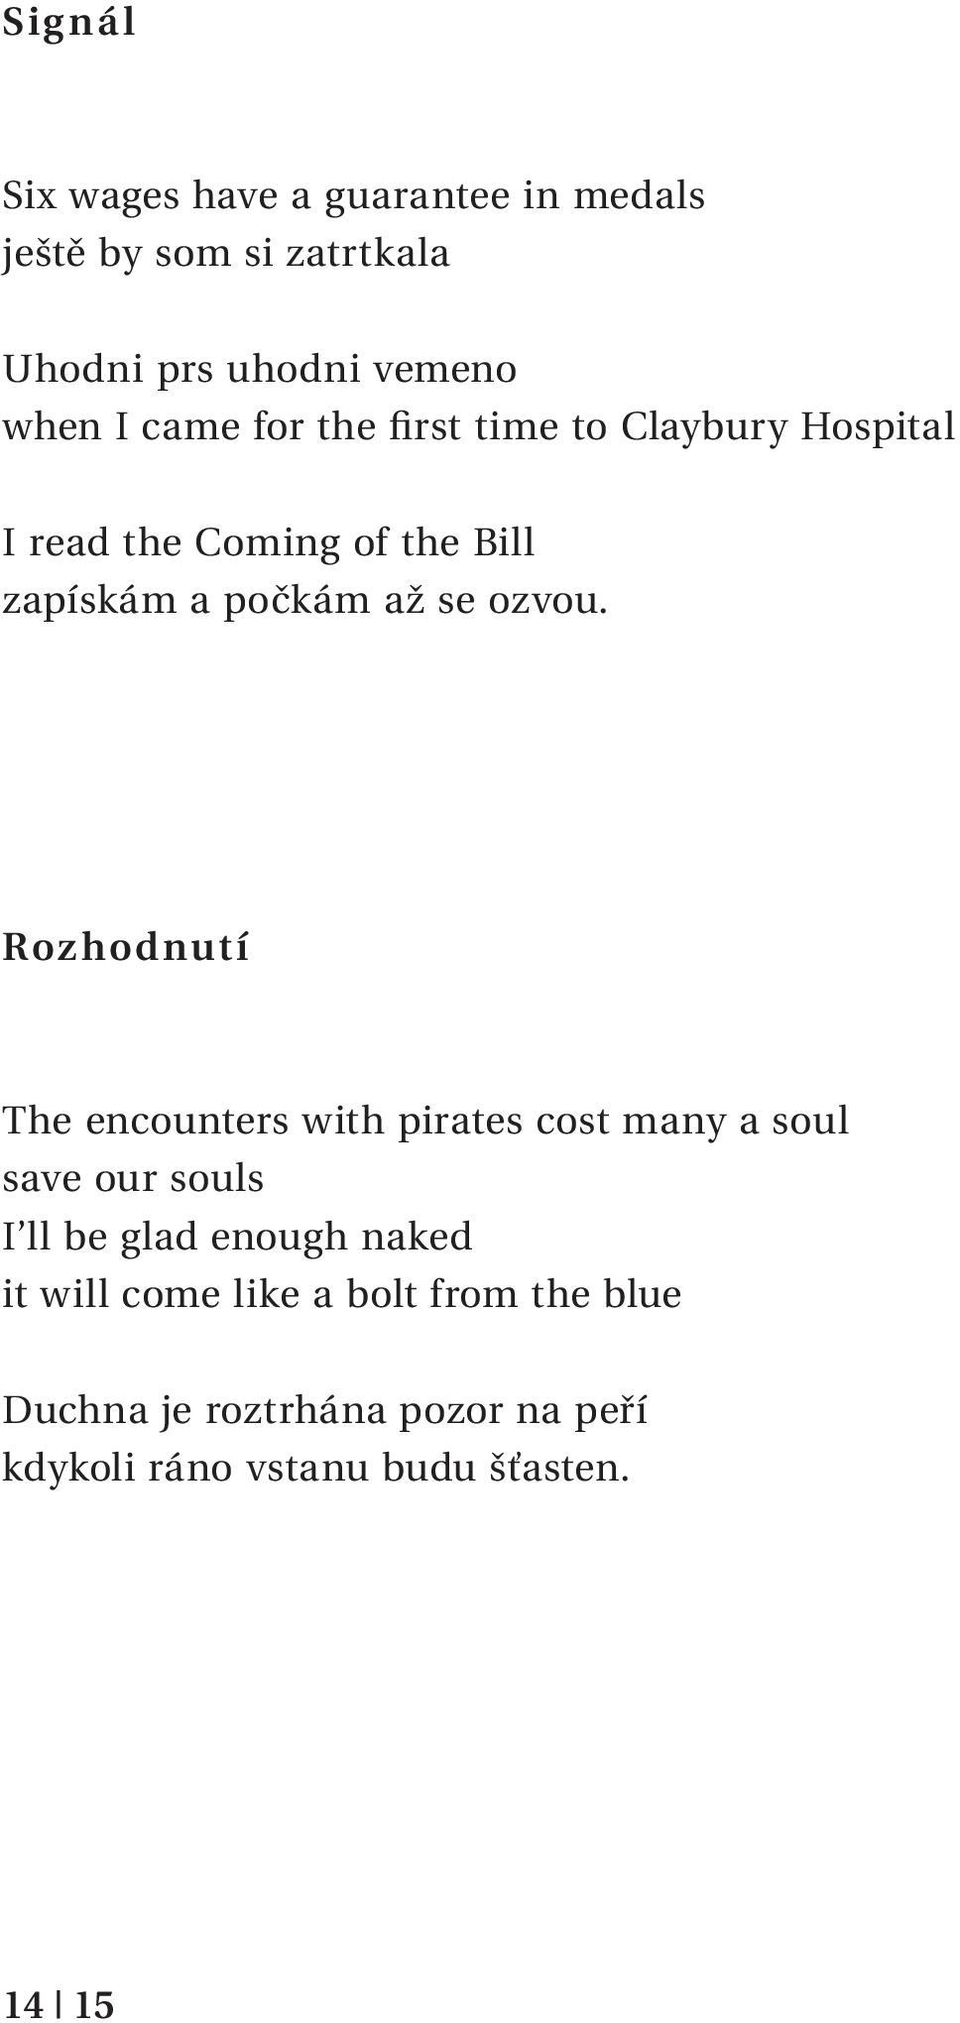 Rozhodnutí The encounters with pirates cost many a soul save our souls I ll be glad enough naked it will